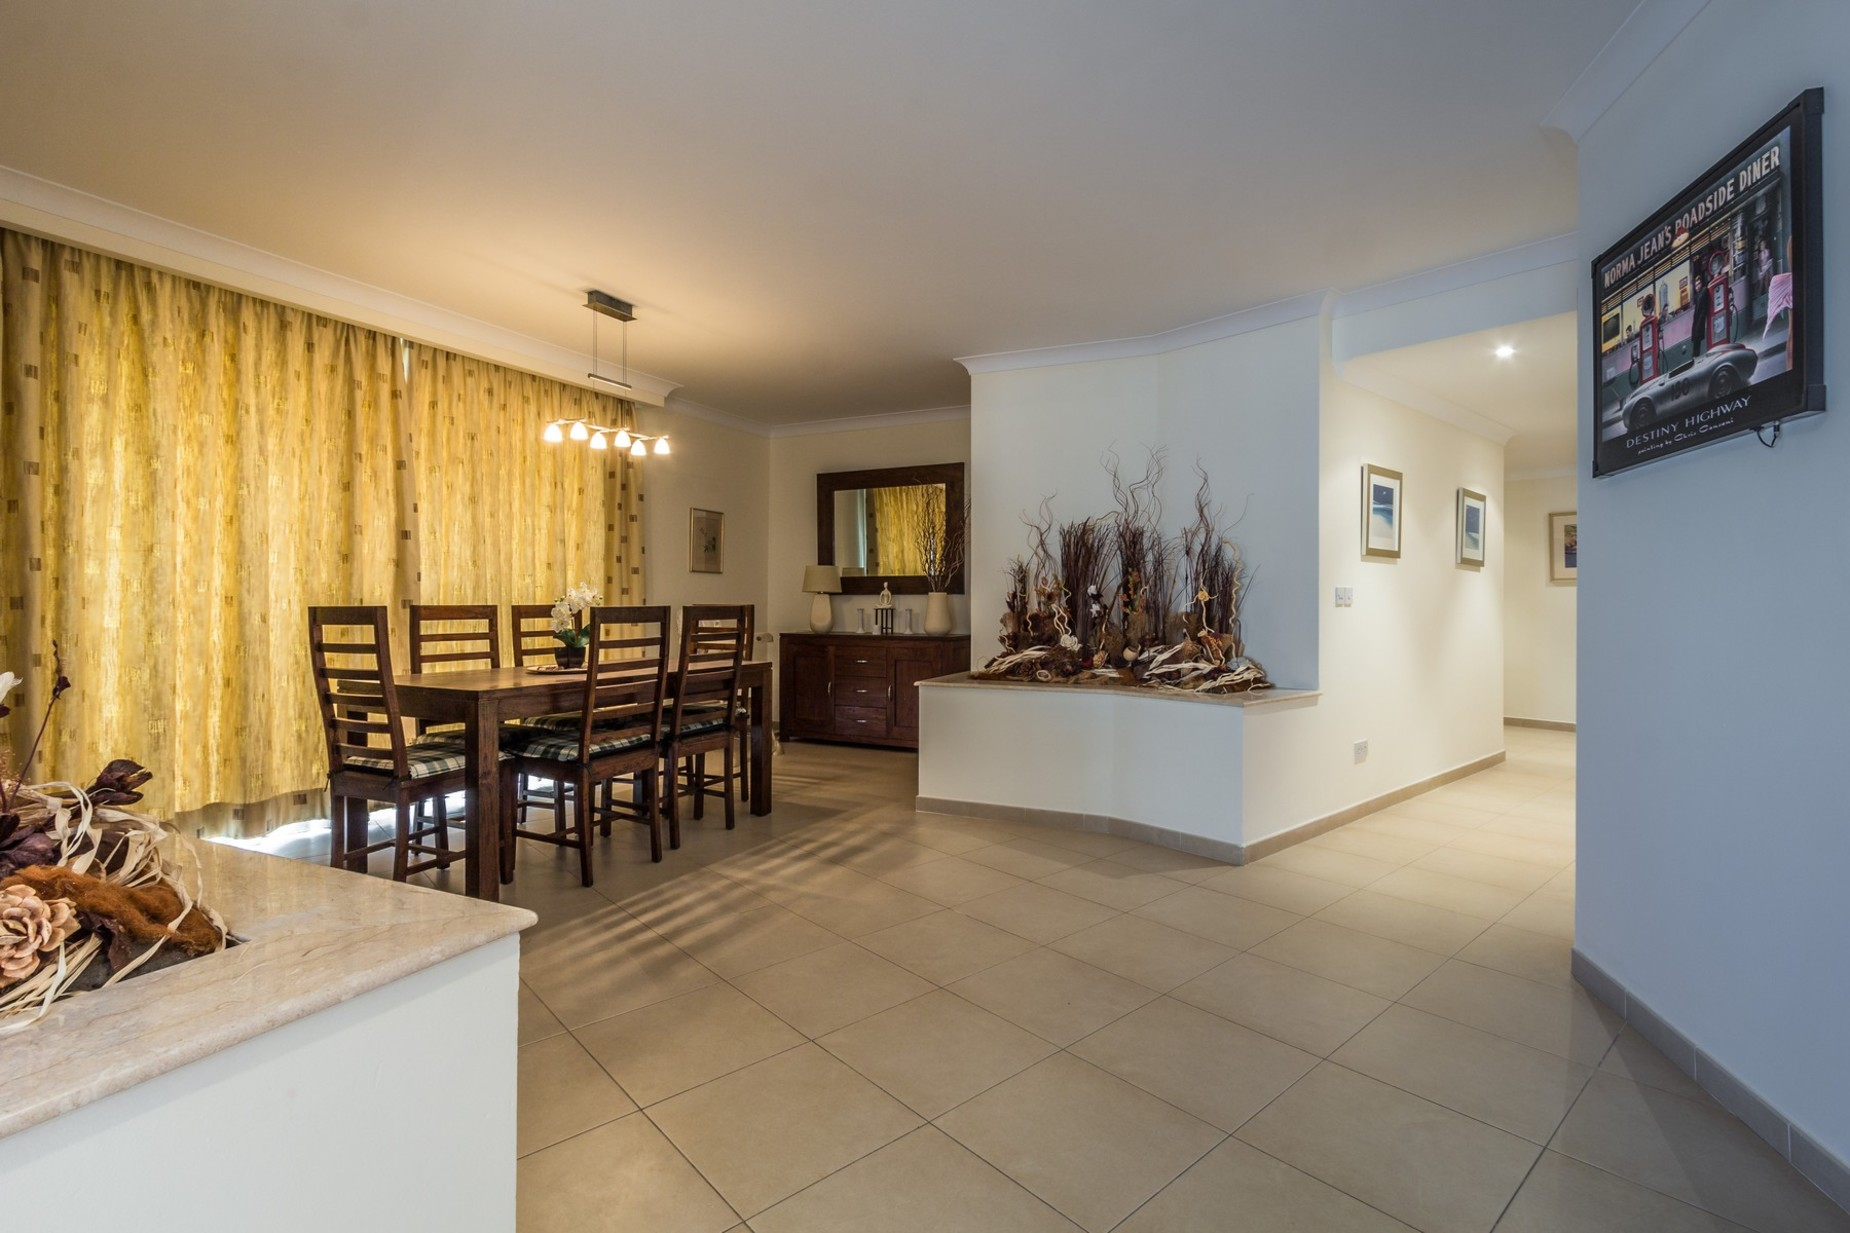 4 bed Apartment For Rent in St Julian's, St Julian's - thumb 5